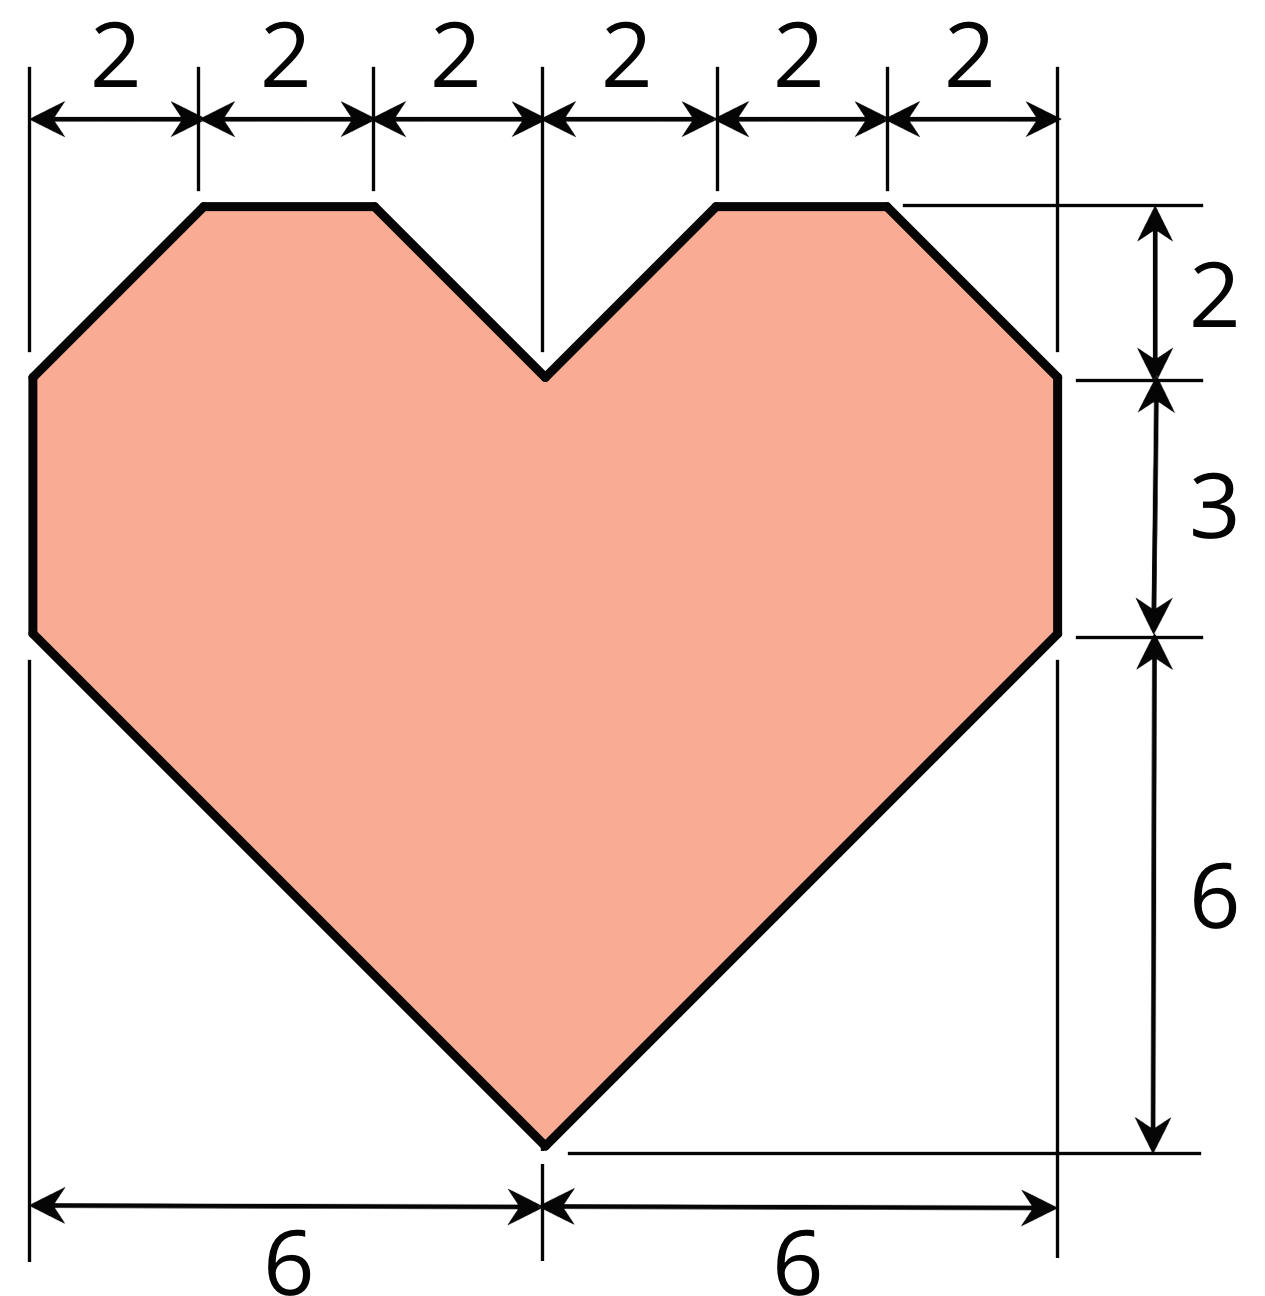 A heart-shaped polygon. Arrows along the bottom indicate the width of each half of the polygon is 6. Arrows along the top indicate that each of the six sides at the top span 2 units. Arrows along the right side indicate that the top portion of the polygon is 2 units, the middle portion is 3 units, and the bottom portion is 6 units.